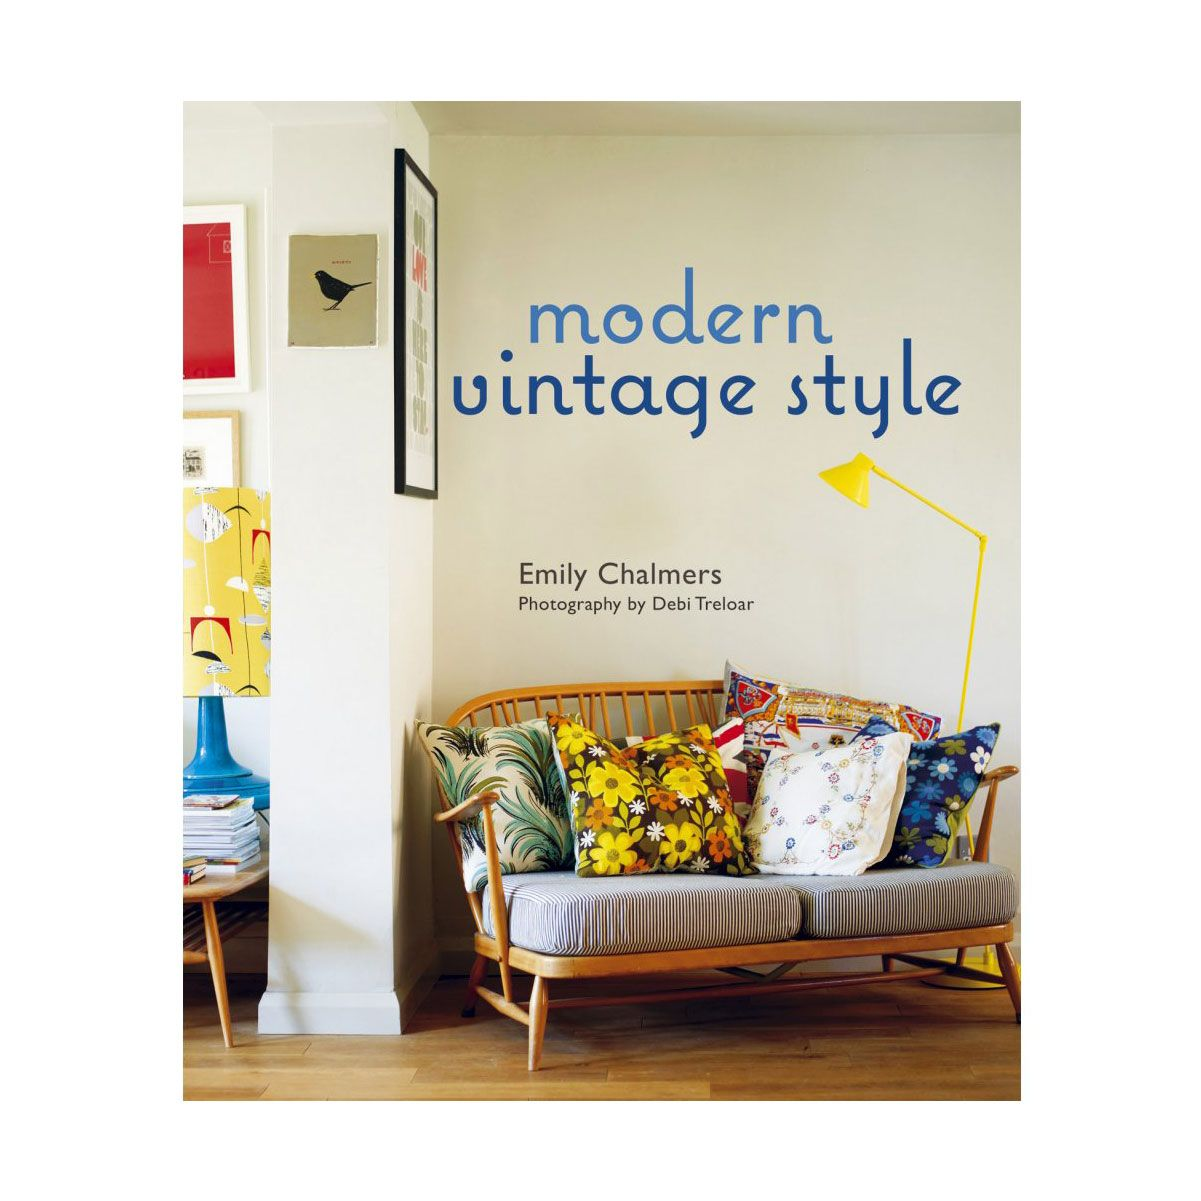 Modern Vintage Style By Emily Chalmers Words Ali Hanan Photography Debi Treloar Owns The Boutique Caravan And U